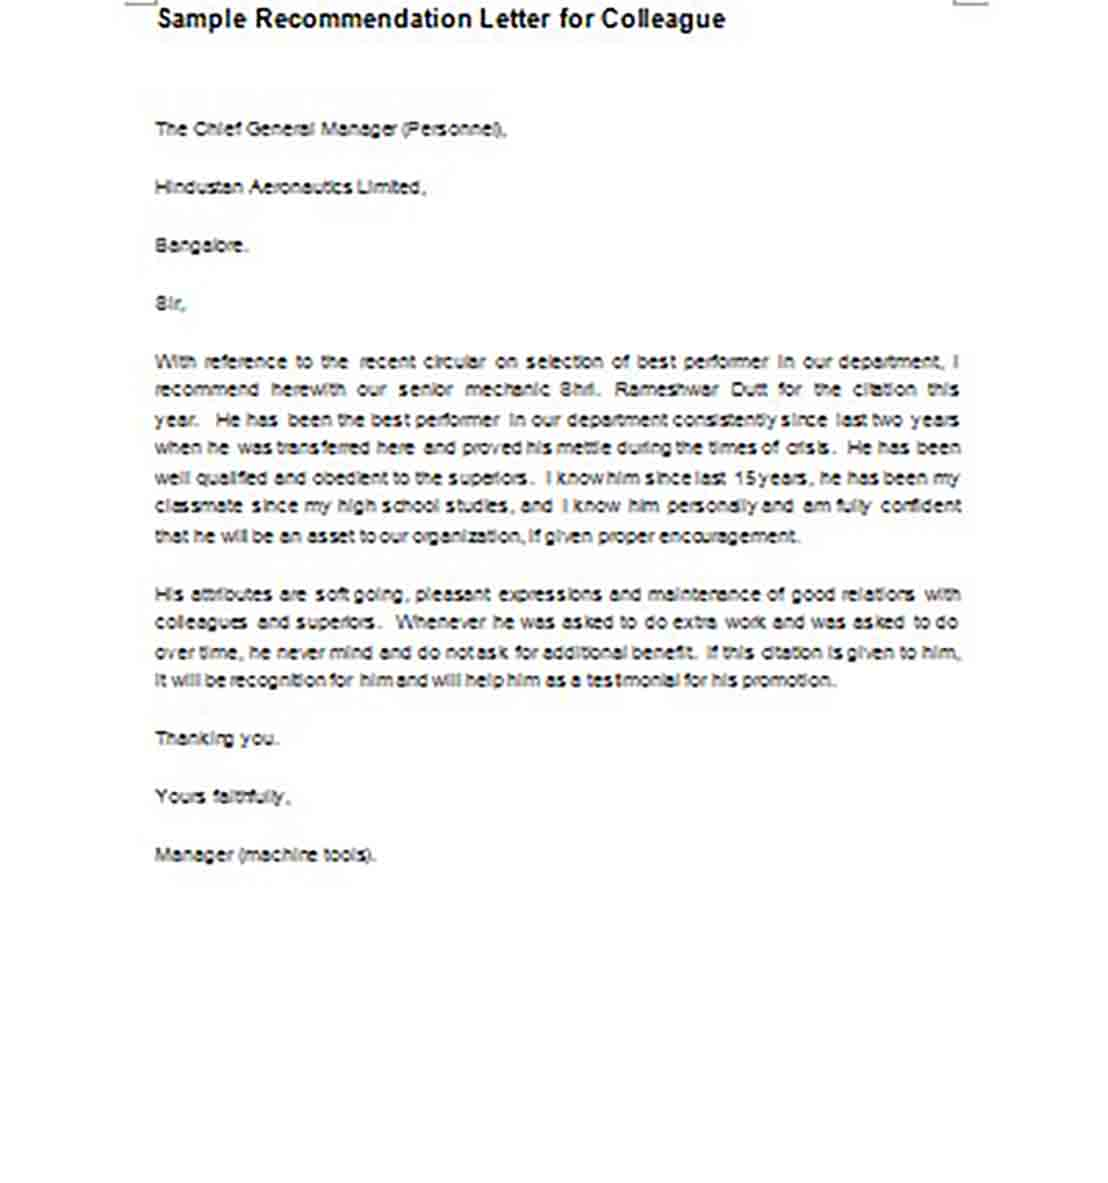 Sample Recommendation Letter for Colleague templates